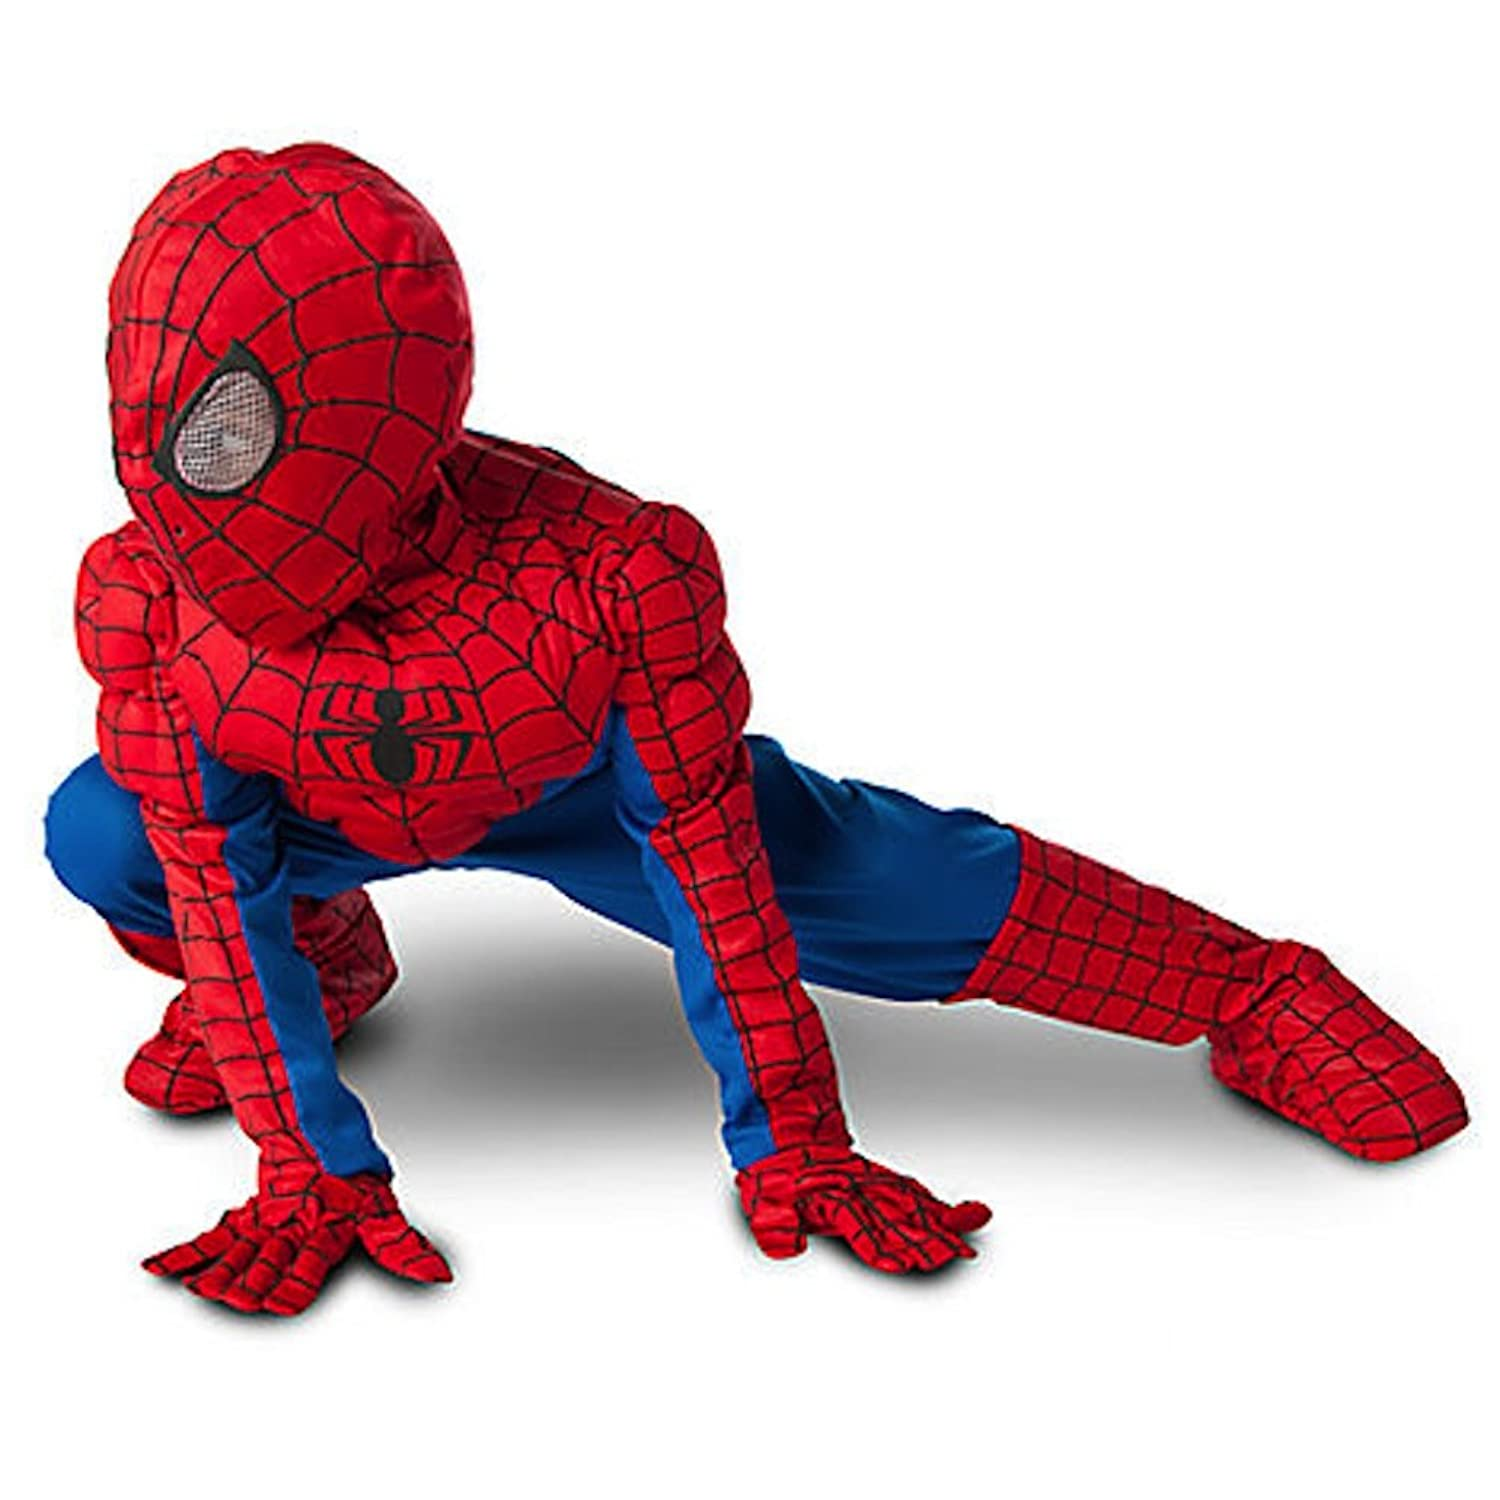 61G9ECymUsL._UL1500_ amazon com ultimate spider man muscle child costume toys & games  at couponss.co